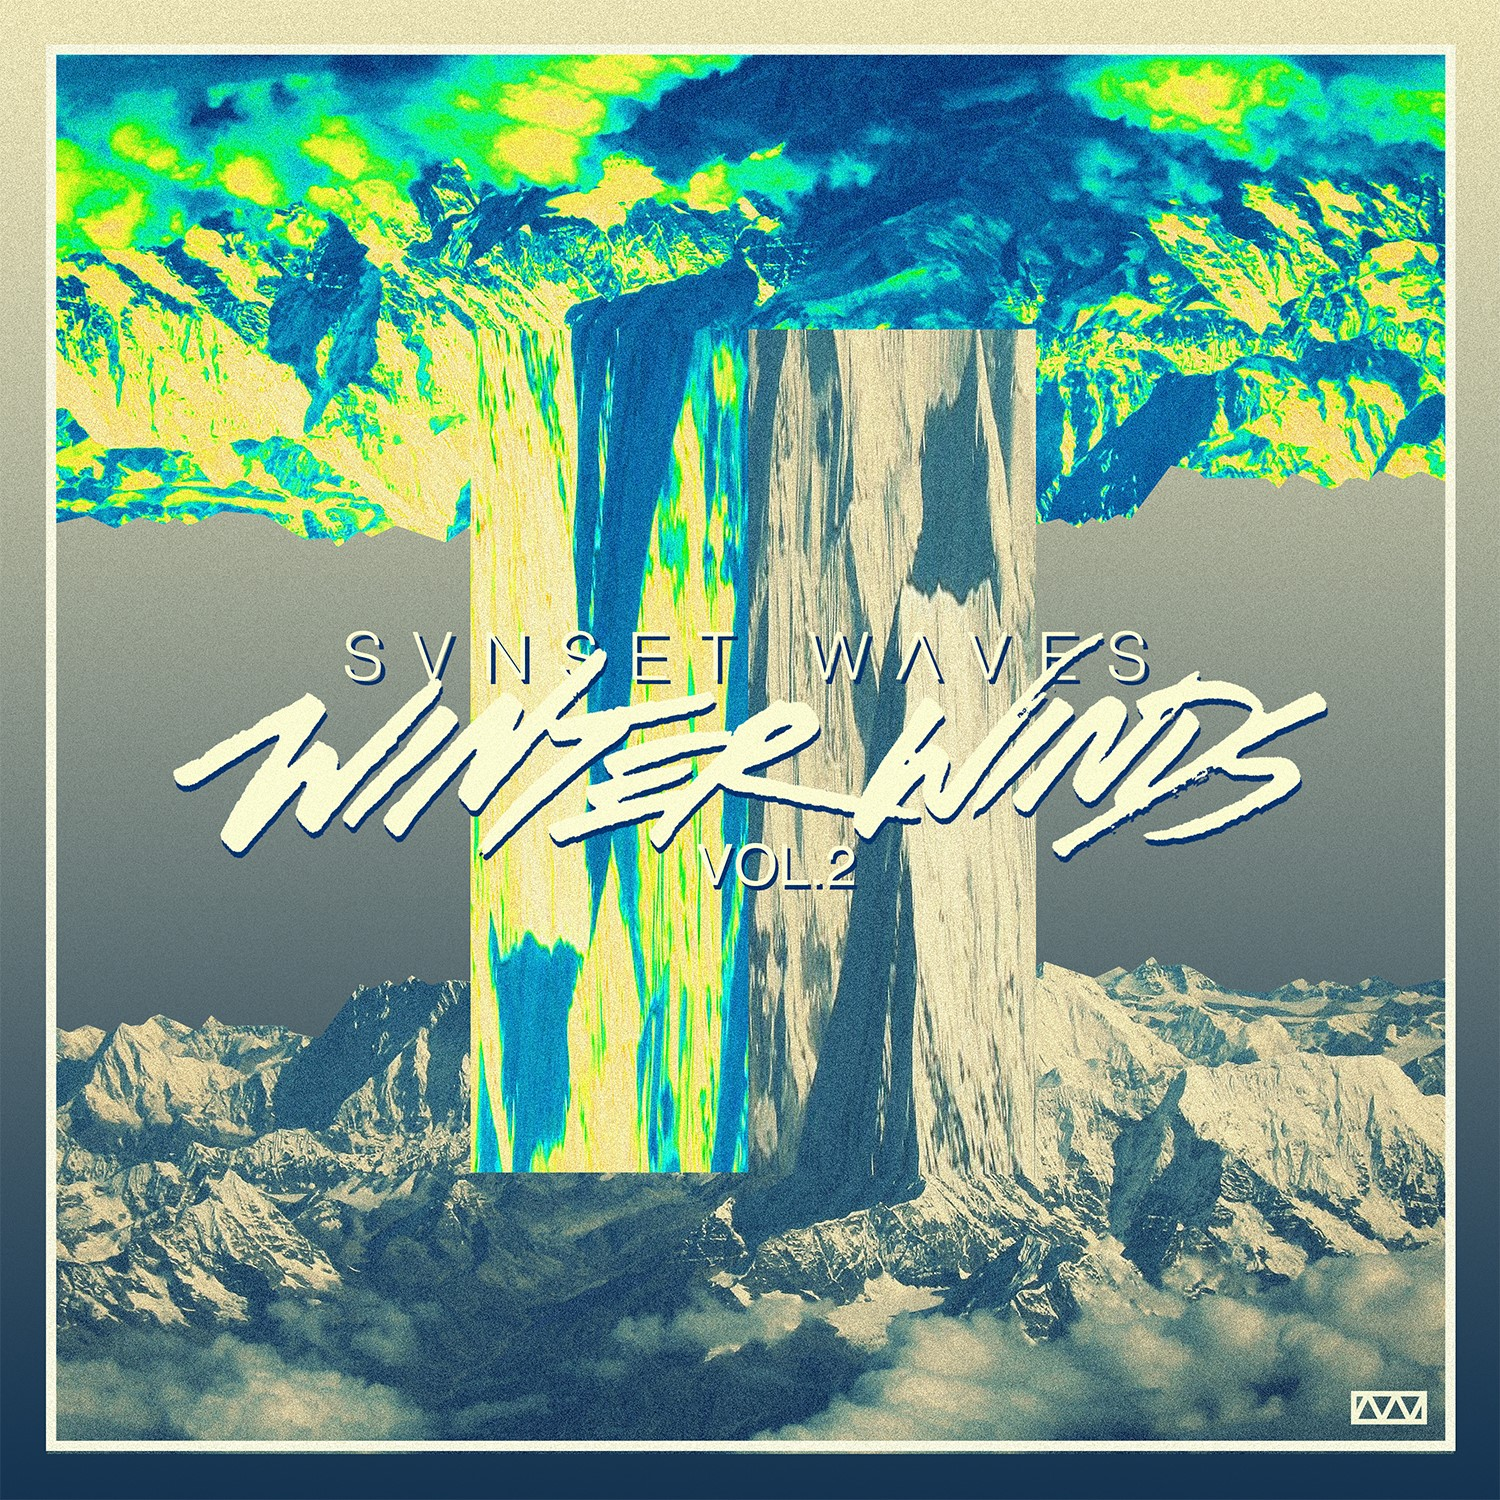 WINTER WINDS vol. 2  /  Compilation  / December 27, 2014